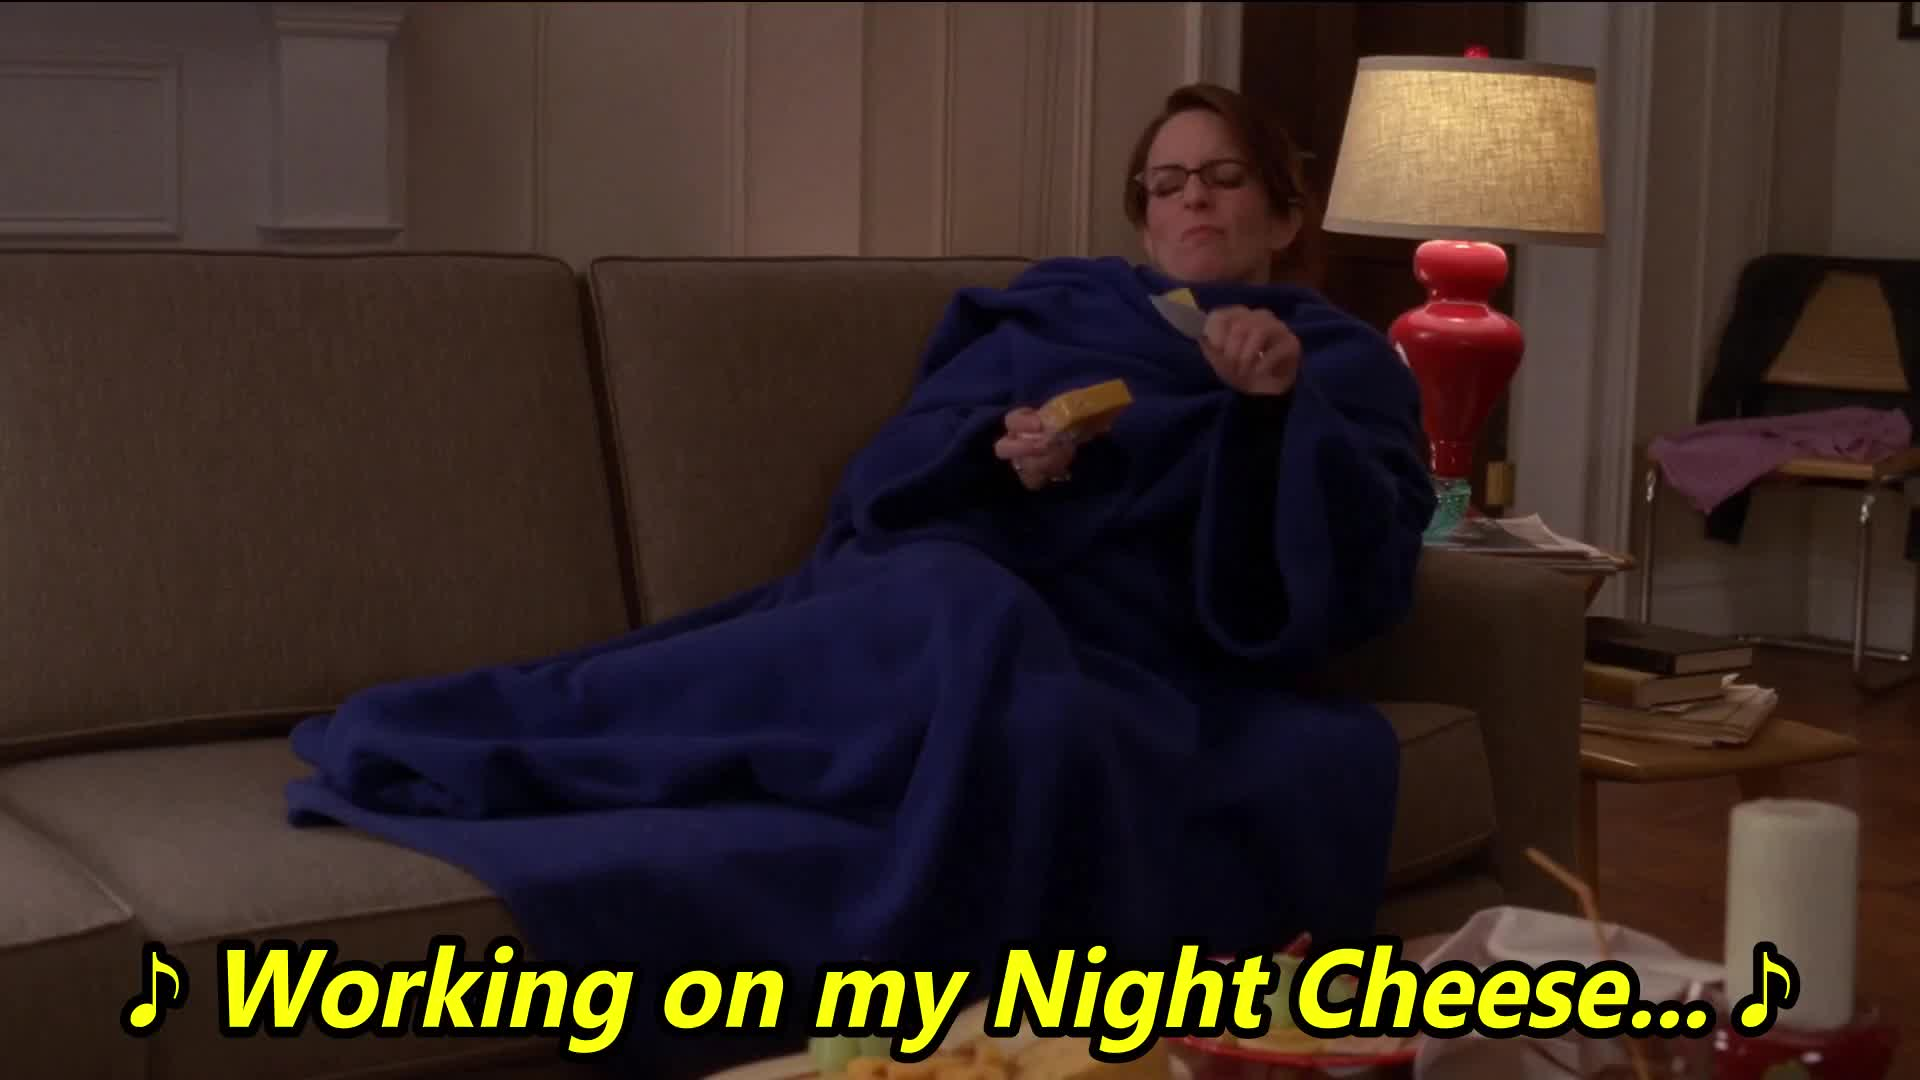 30 rock, busy, cheese, feeling old, fey, lemon, liz, night, s03e19, the ones, tina, ♪ Working on my Night Cheese... ♪ GIFs